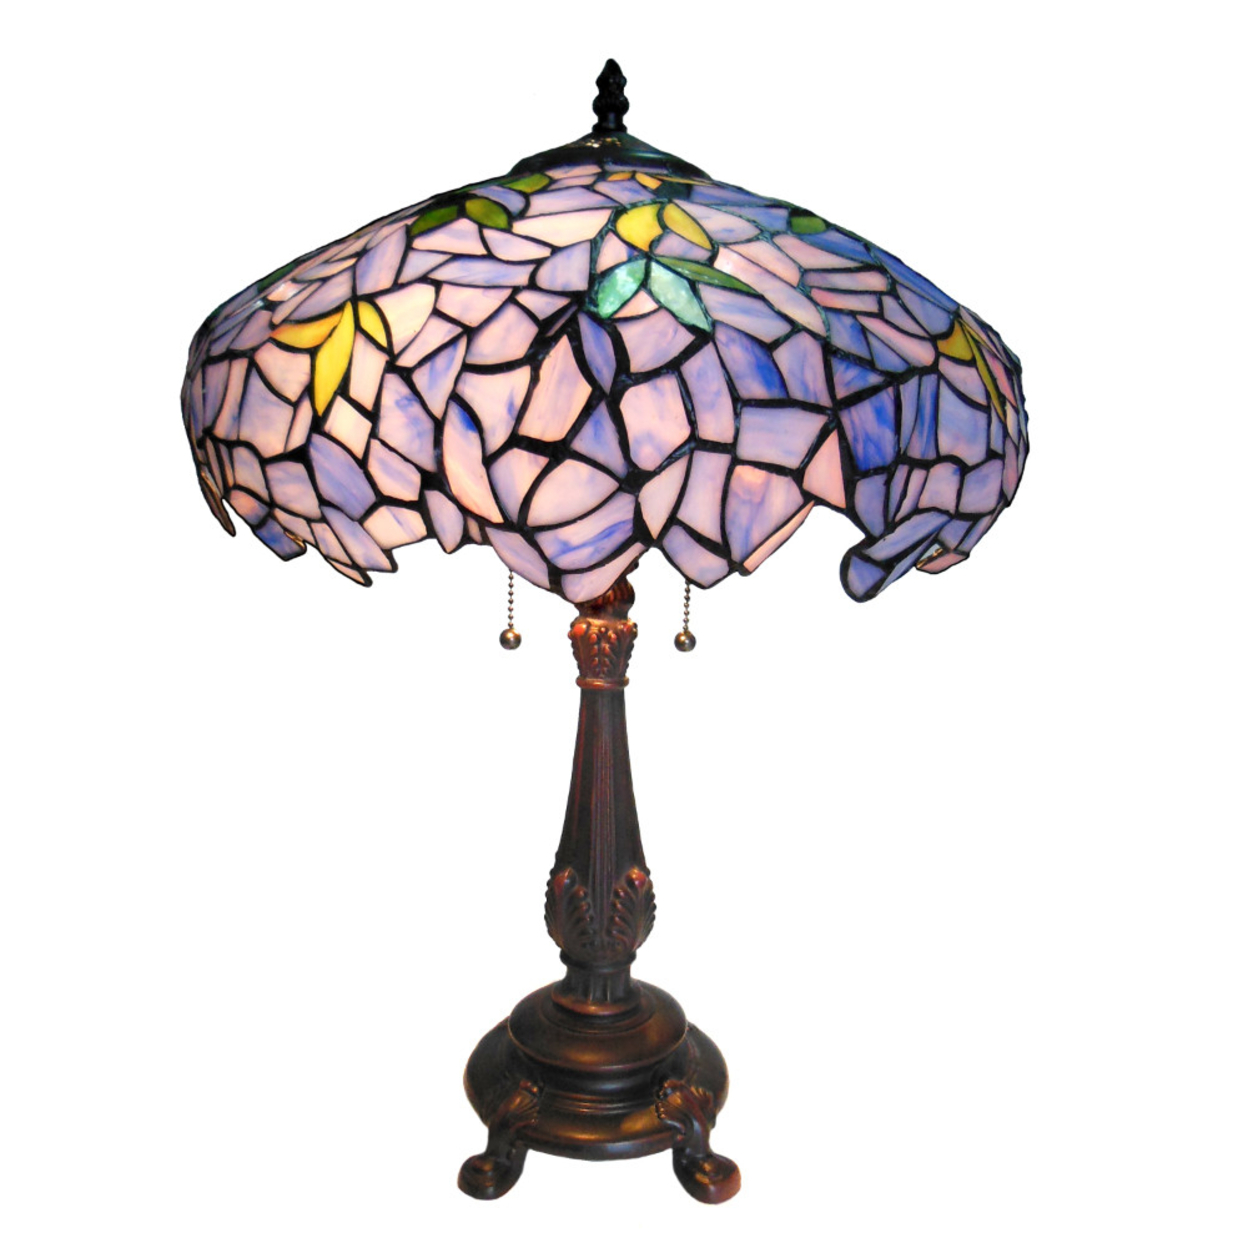 "Ch16828pw16-tl2 Chloe Lighting Tiffany-style 2 Light Wisteria Table Lamp 16"" Shade"